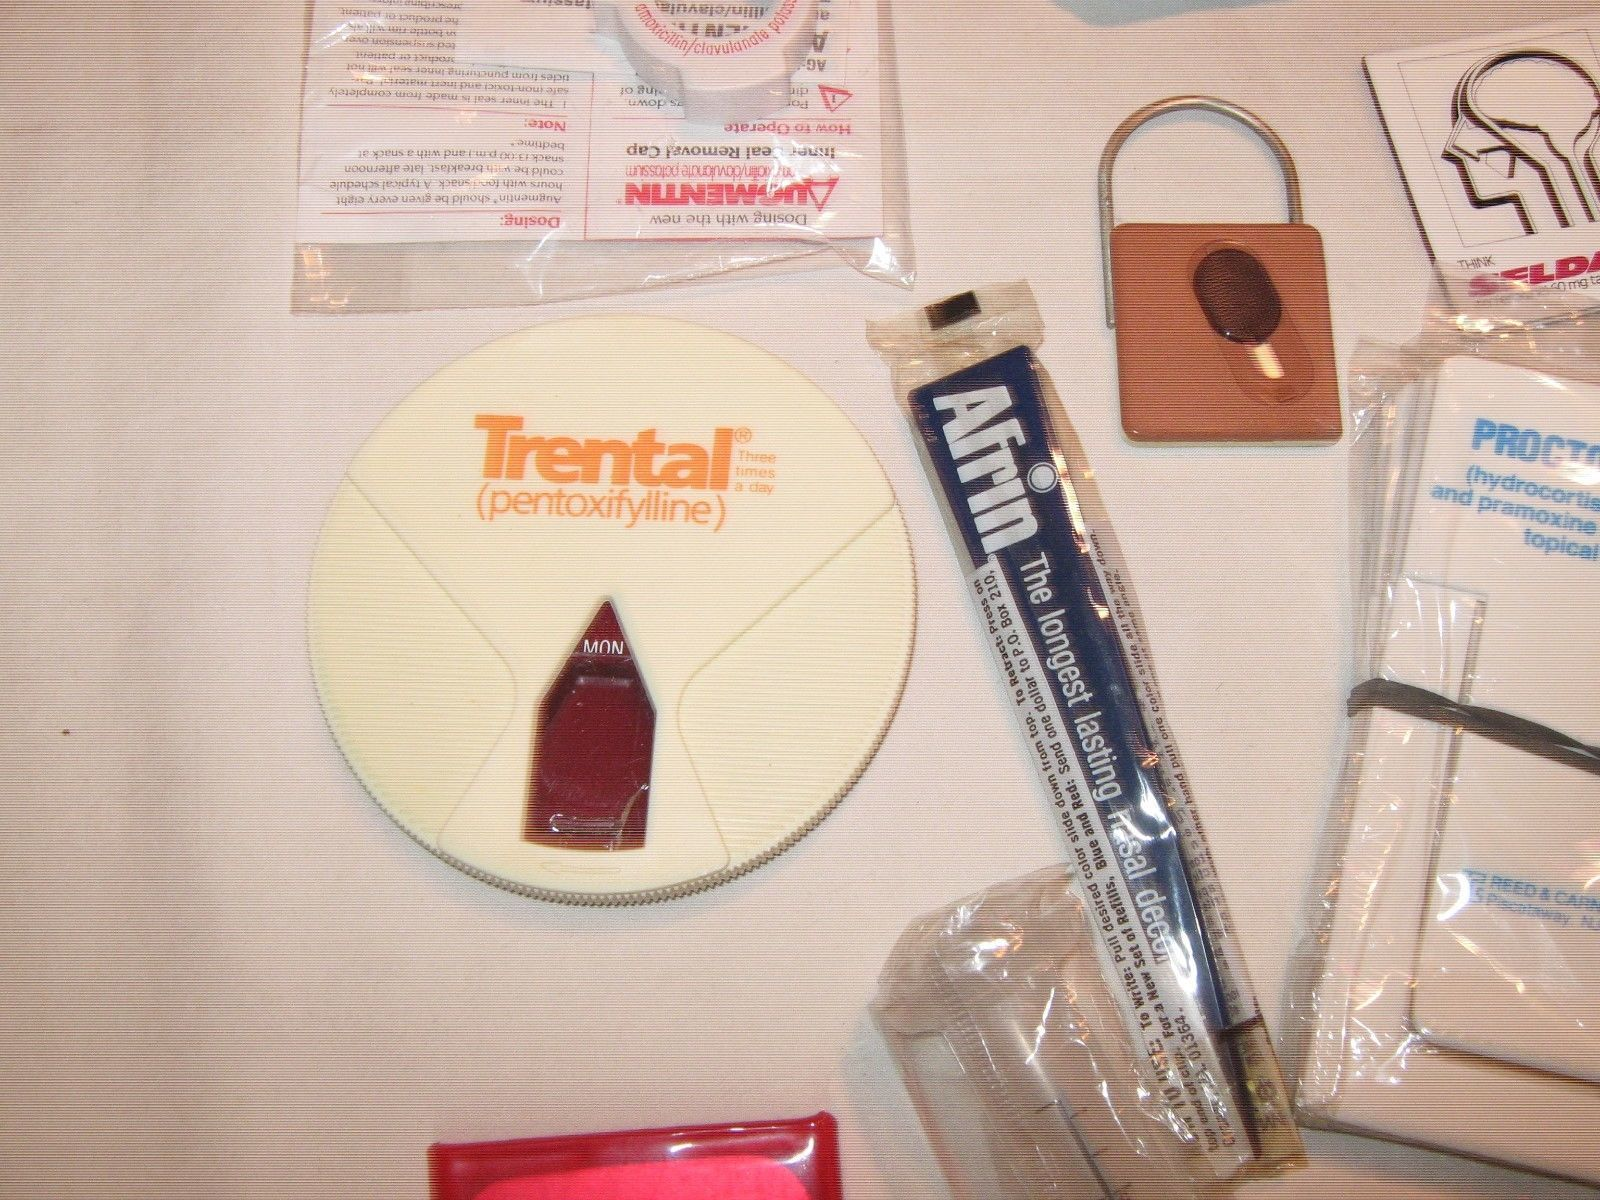 Rx, Pharmacy Promotional Items, Mixed Lot , Advertisment Promos image 11